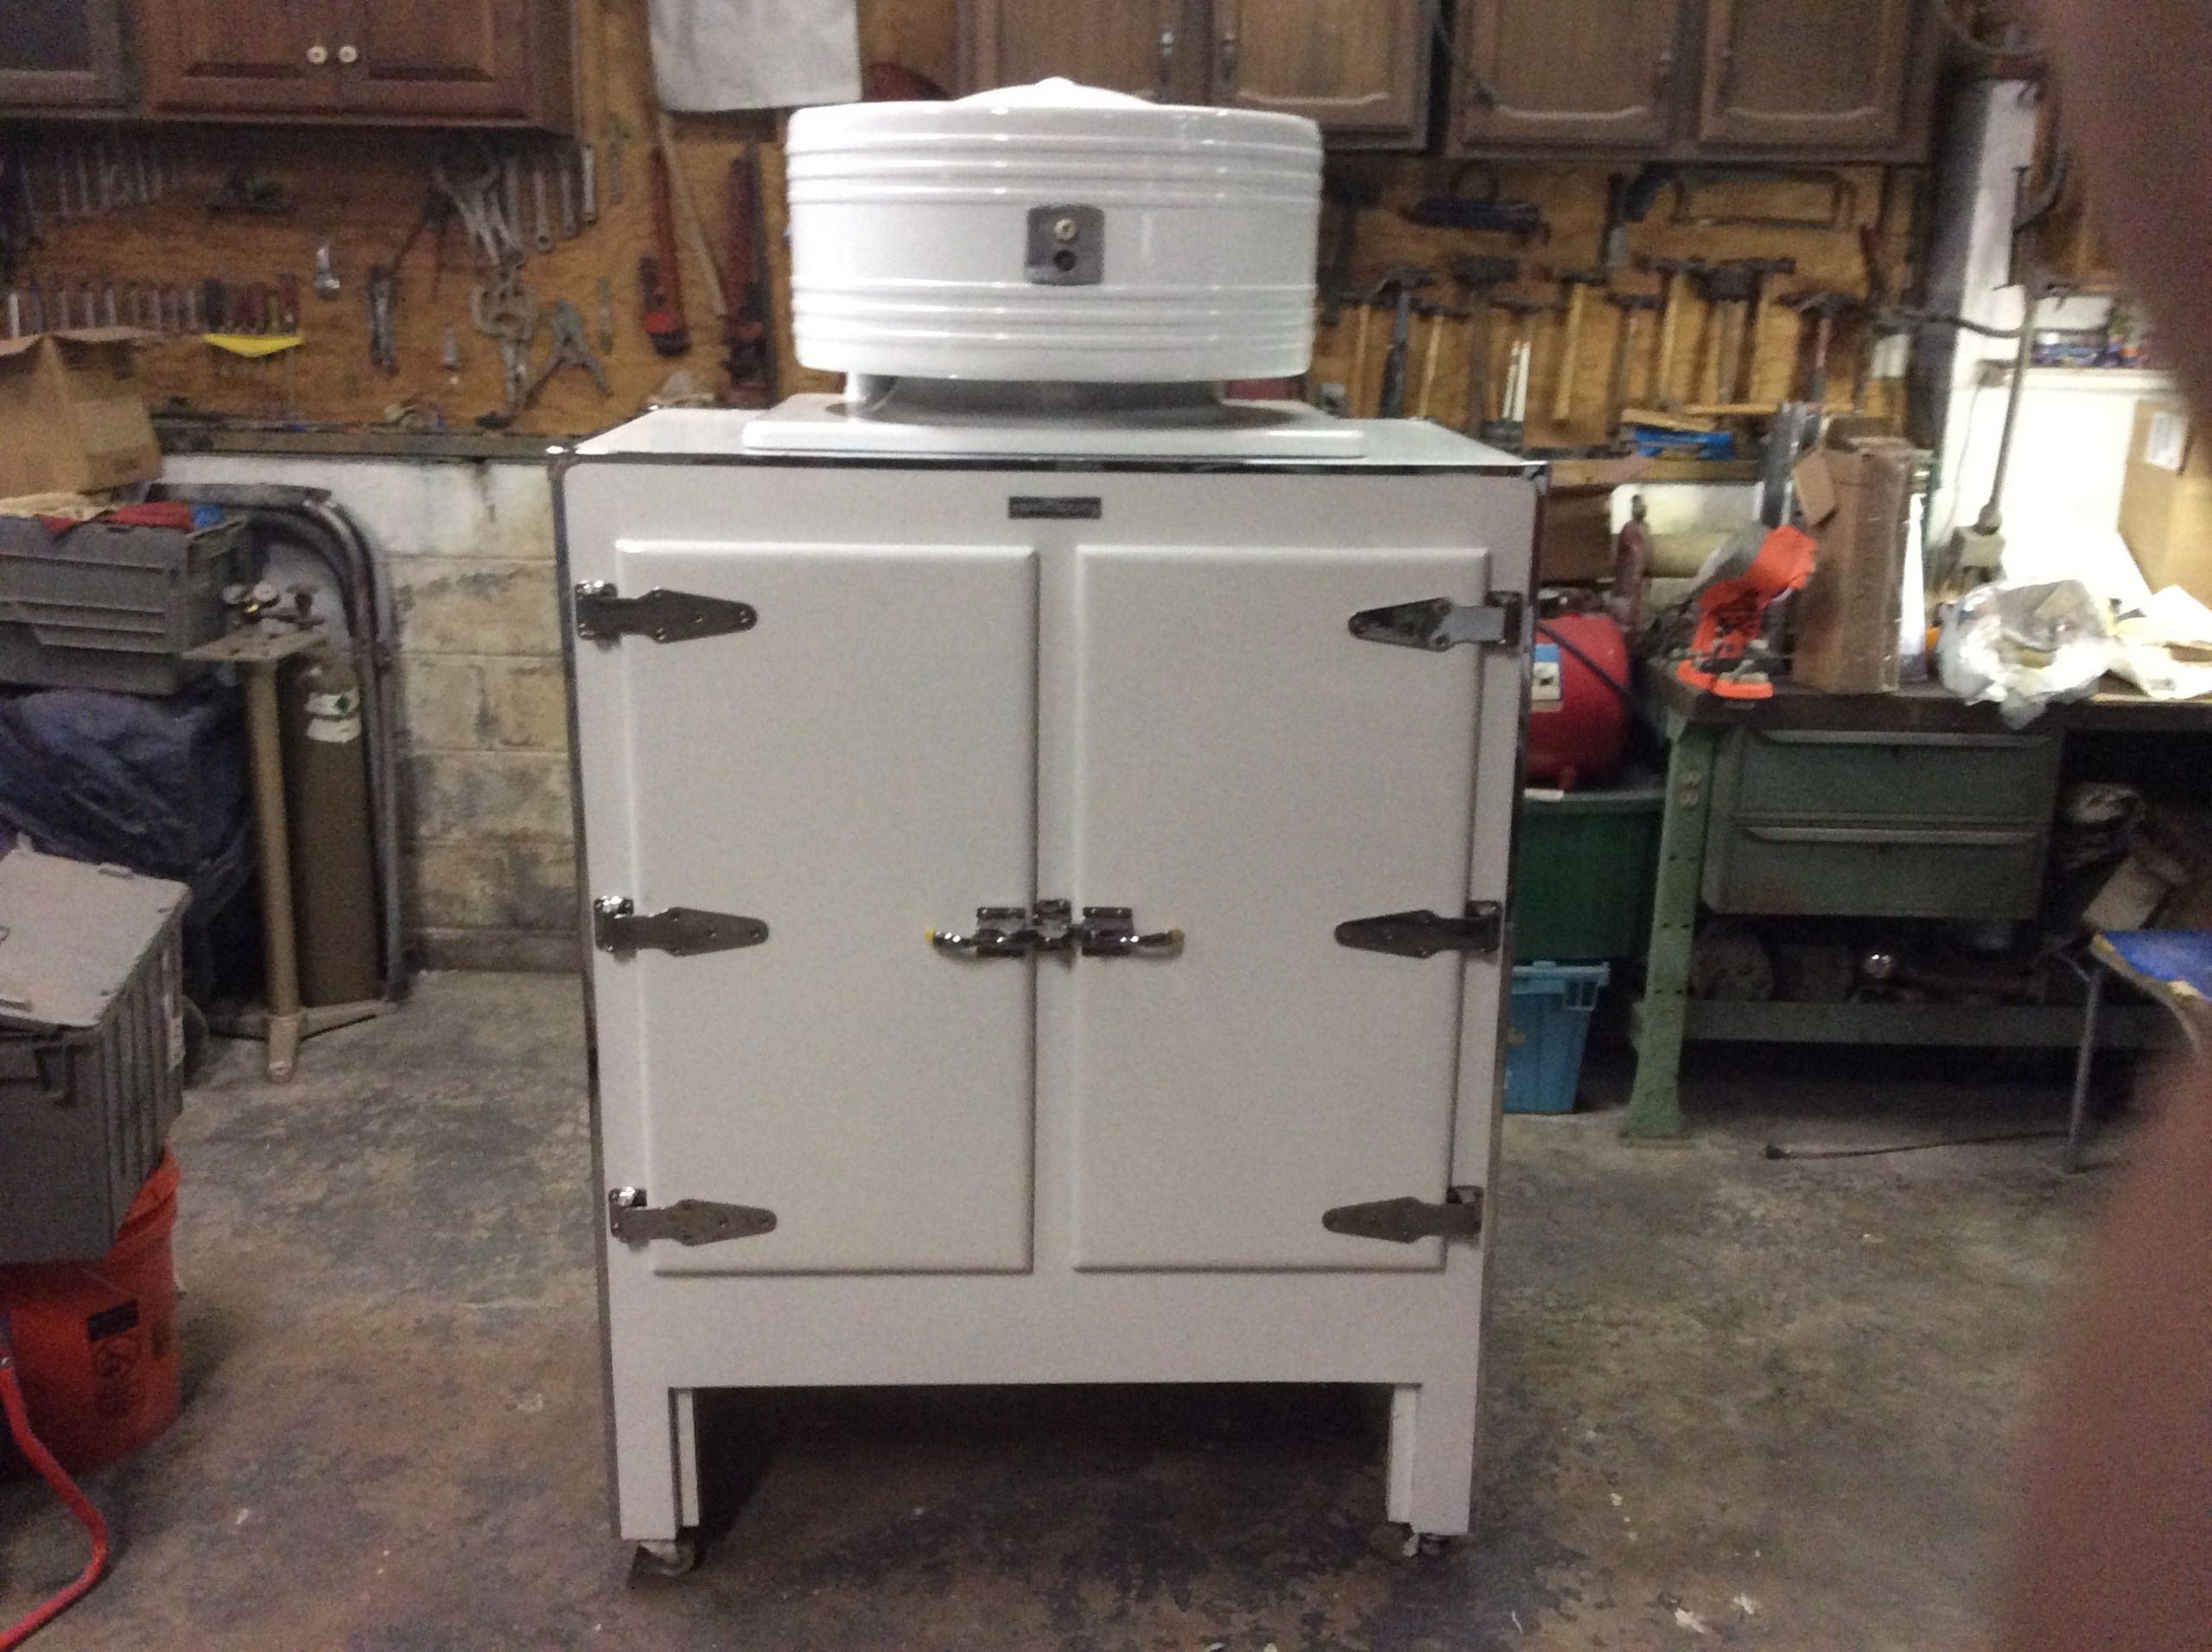 General Electric antique refrigerator/ freezer   from 30's / 40's  professionally restored working